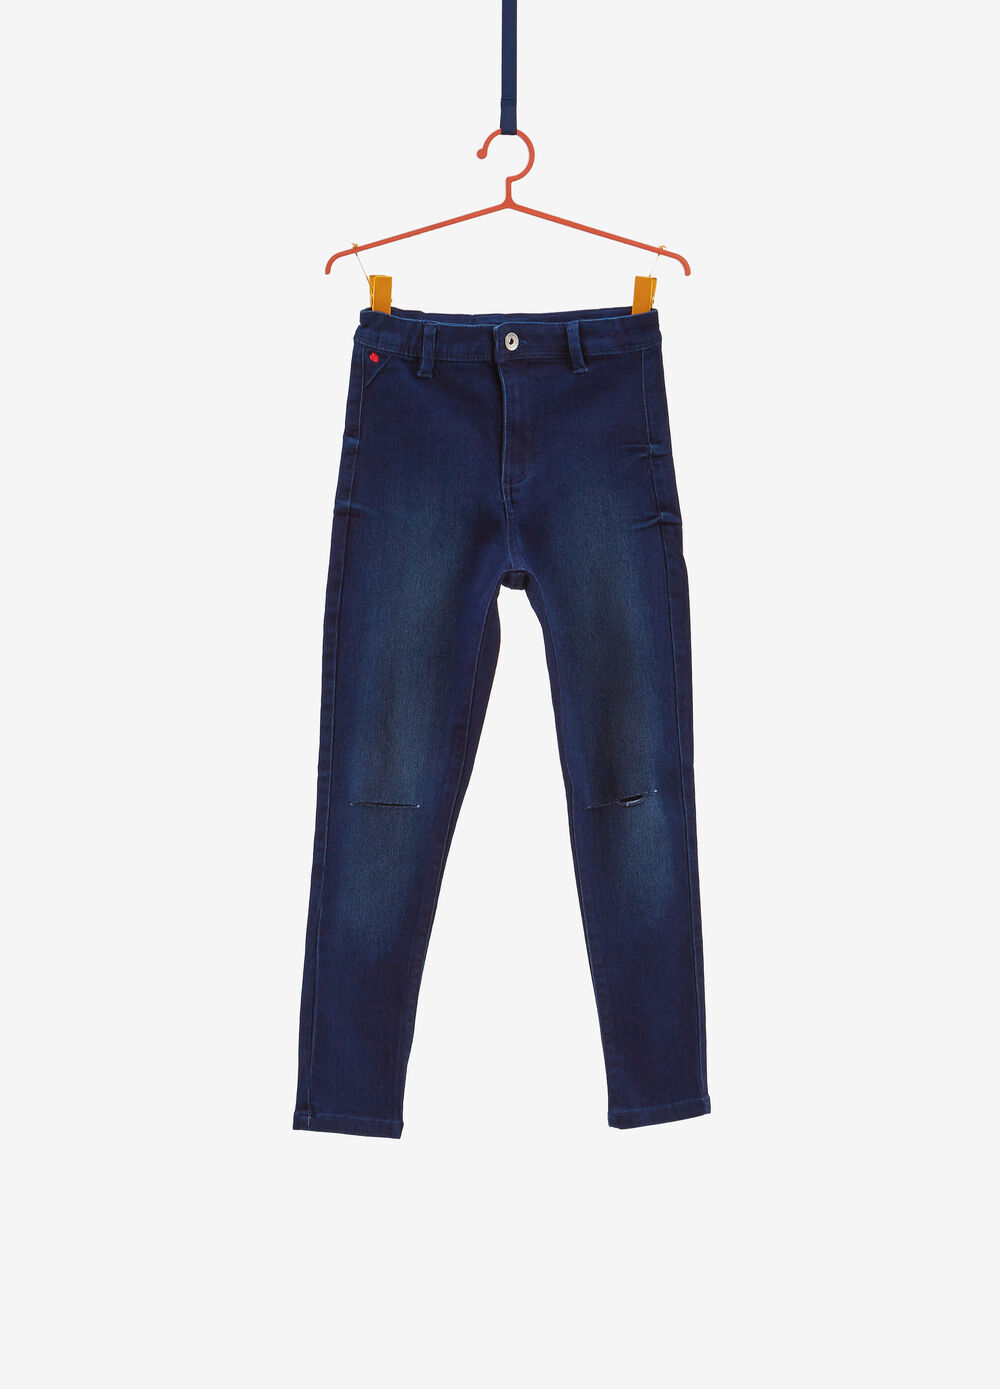 High-waisted stretch jeans with rips